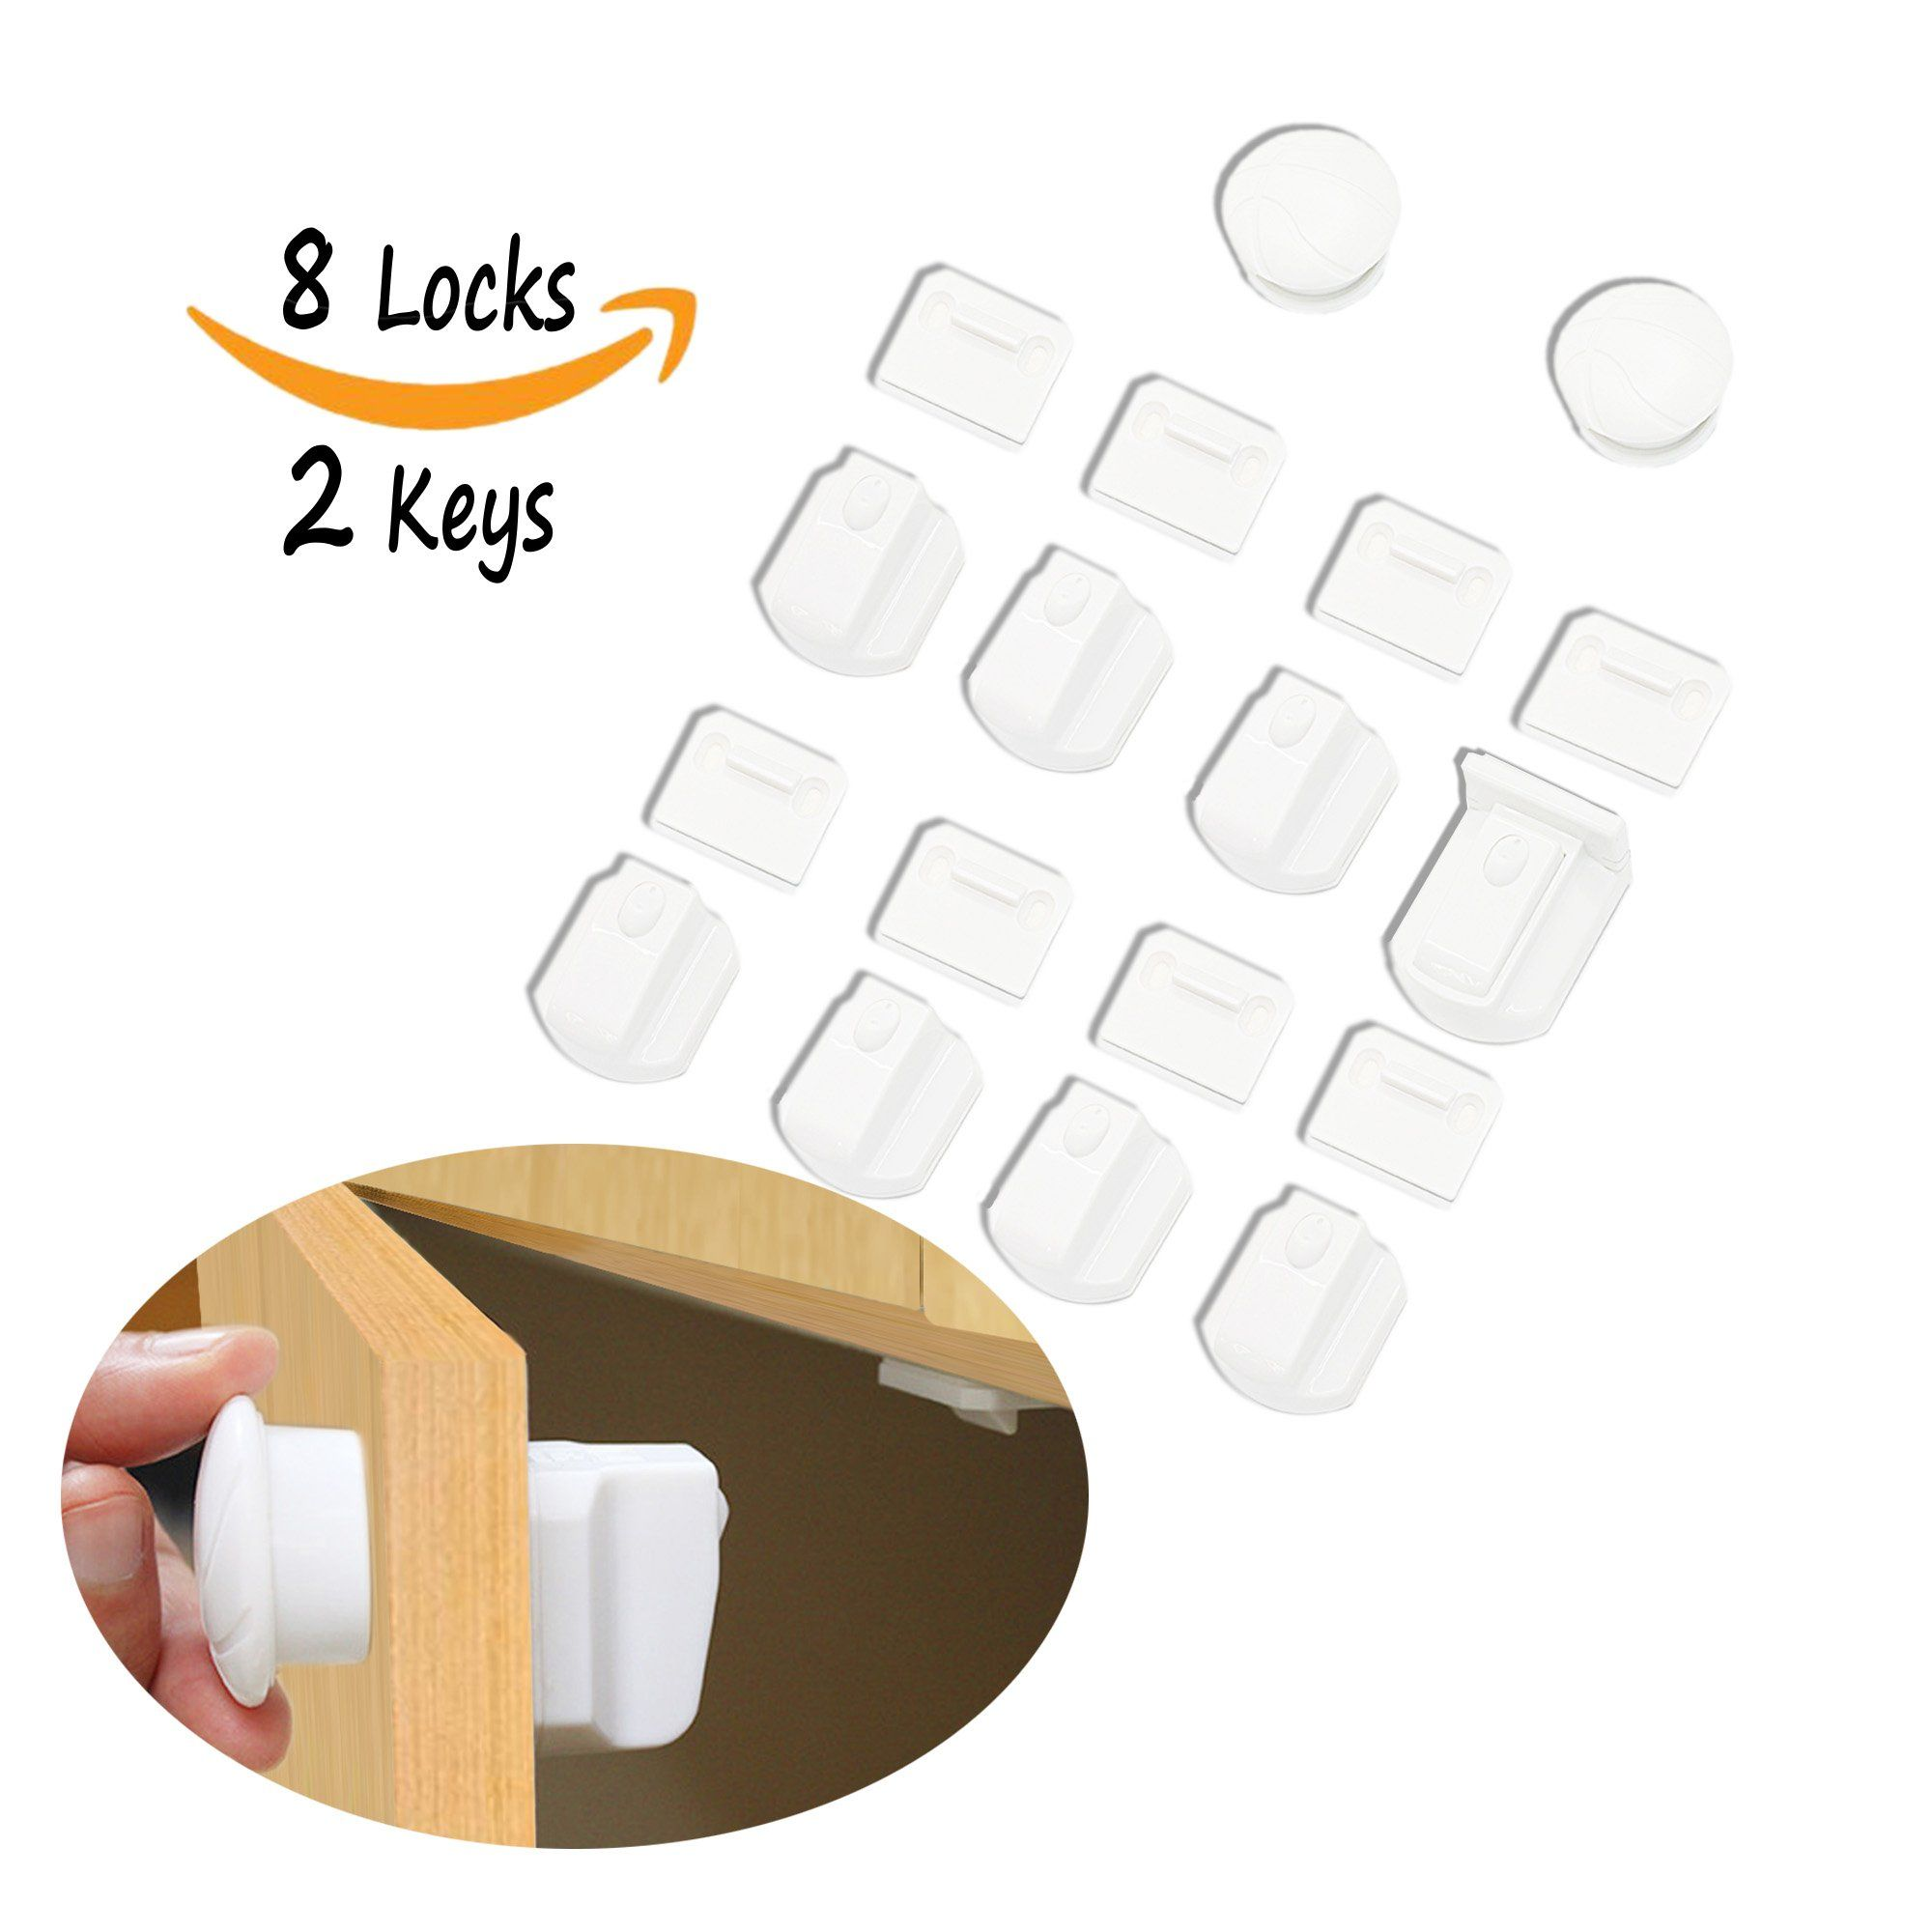 home knobs ez for baby handles child twist strap kiscords cupboard amazon com cabinets safety adhesive cabinet dp latches locks proofing